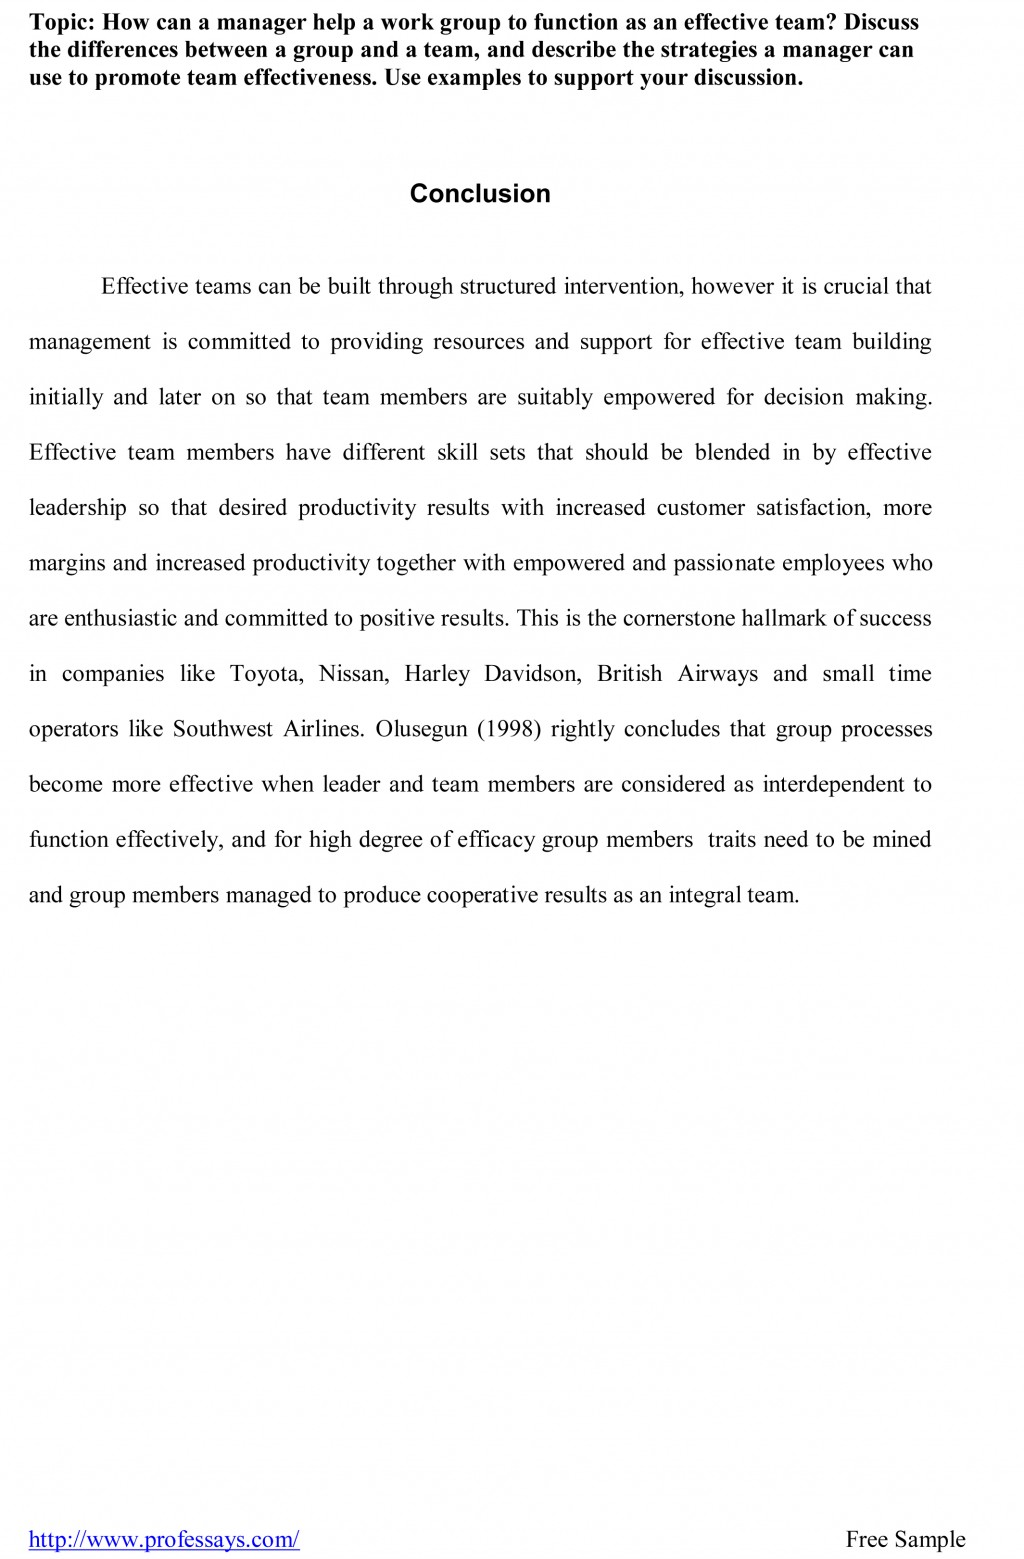 007 Research Paper Help Writing Papers Conclusion Sample For Outstanding My Large